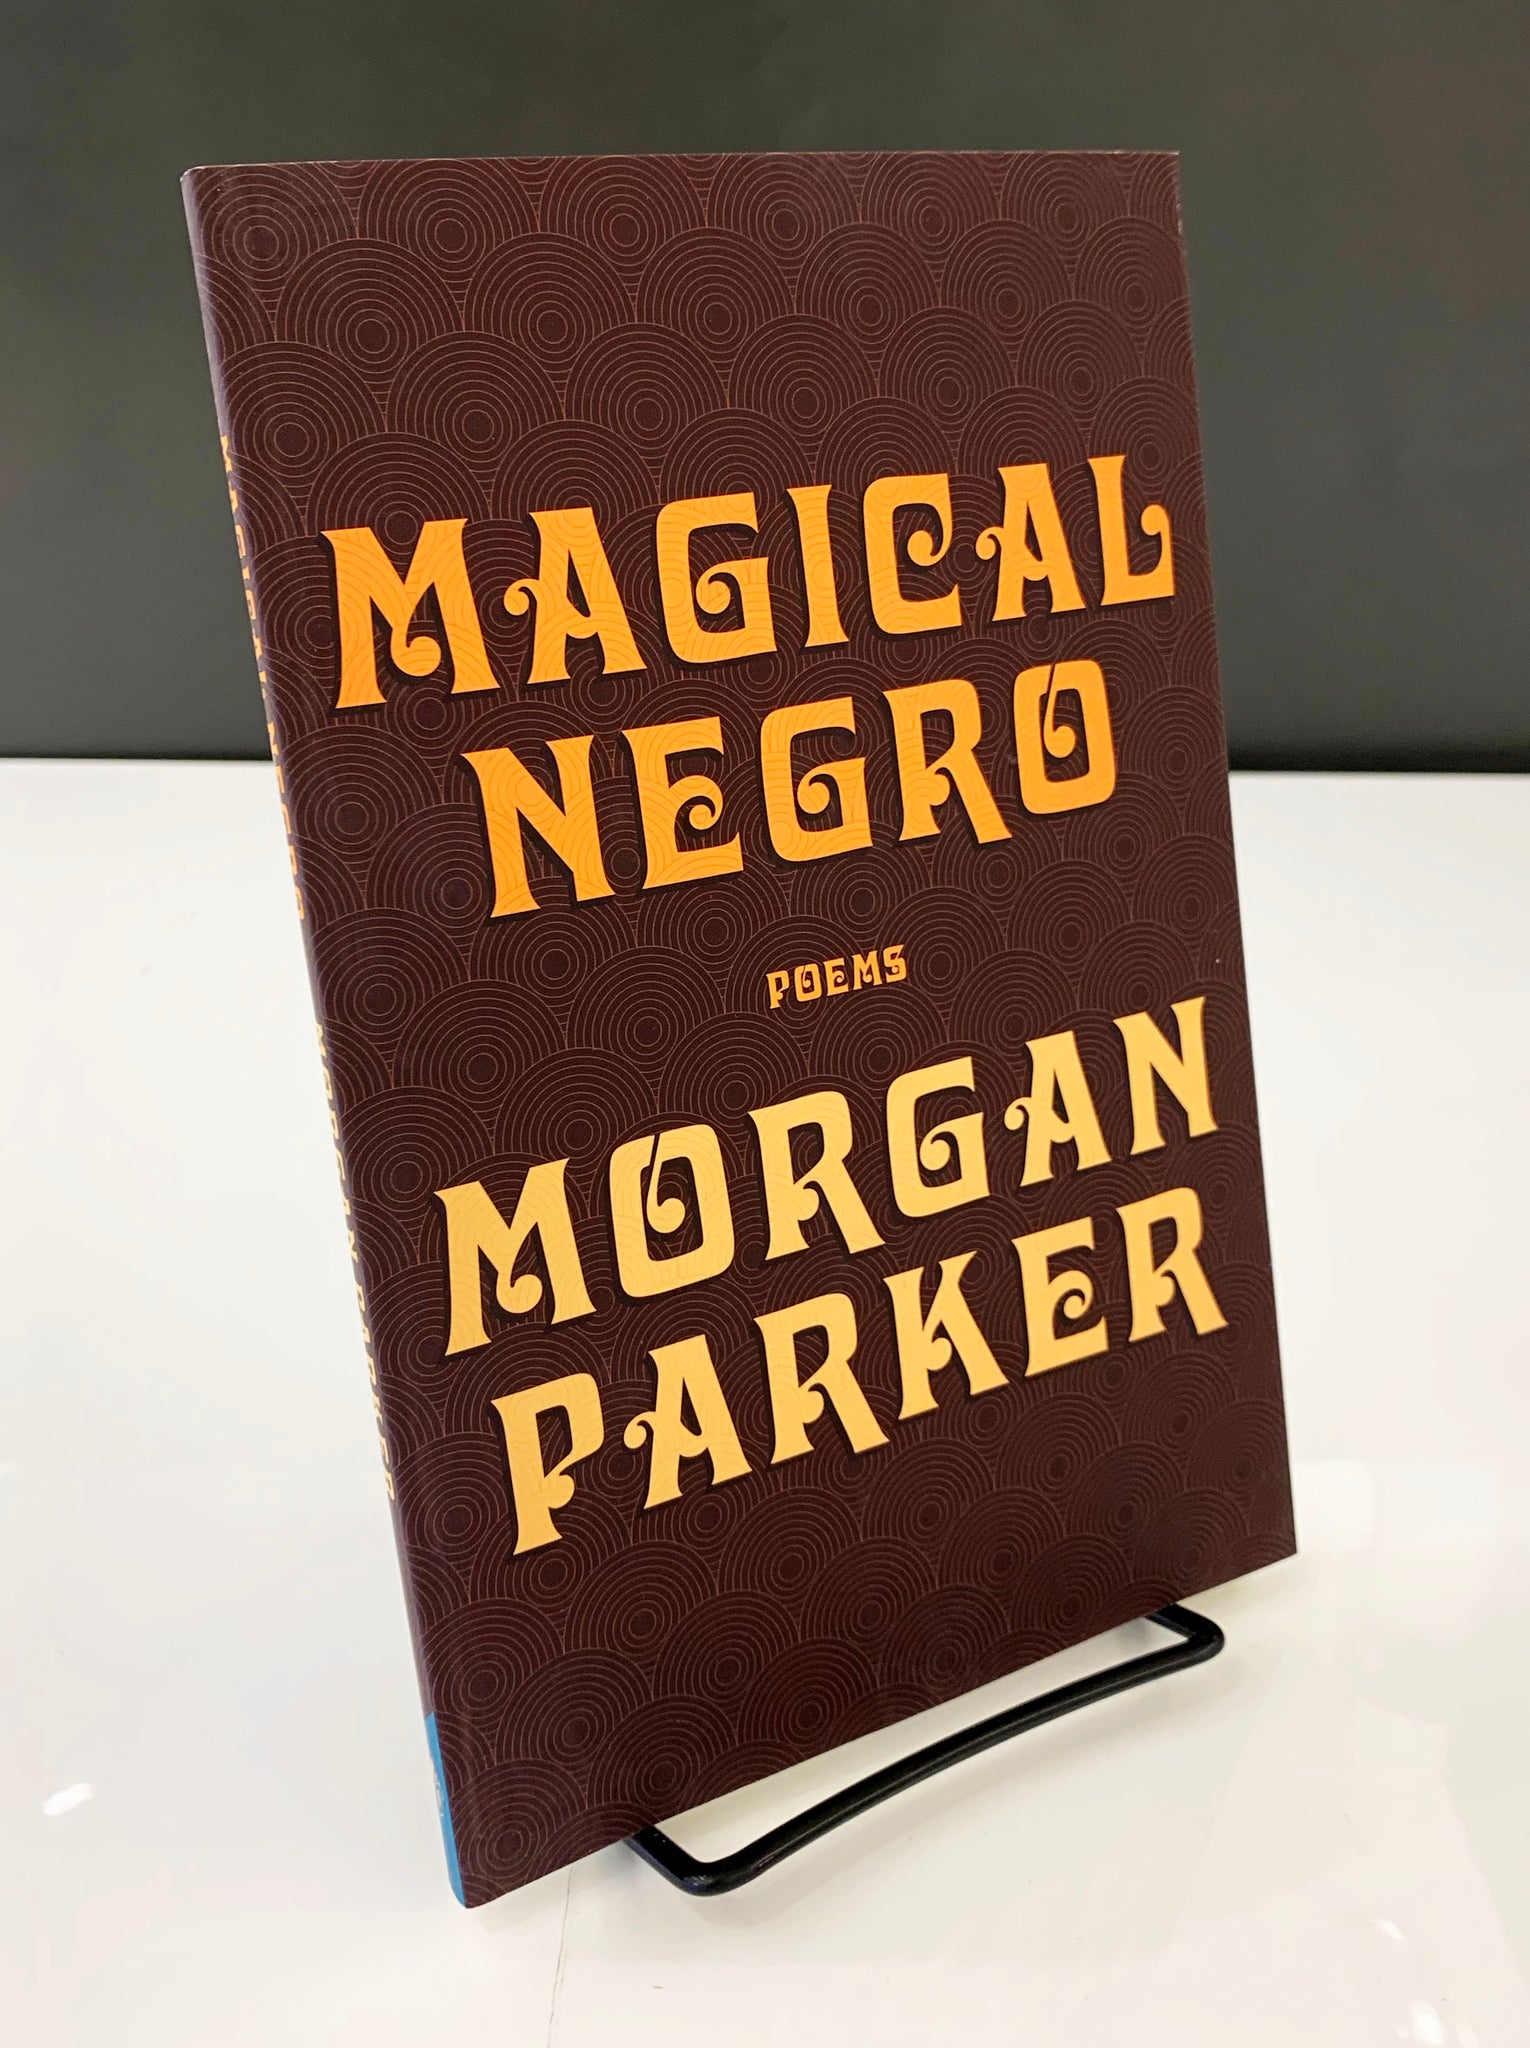 Magical Negro